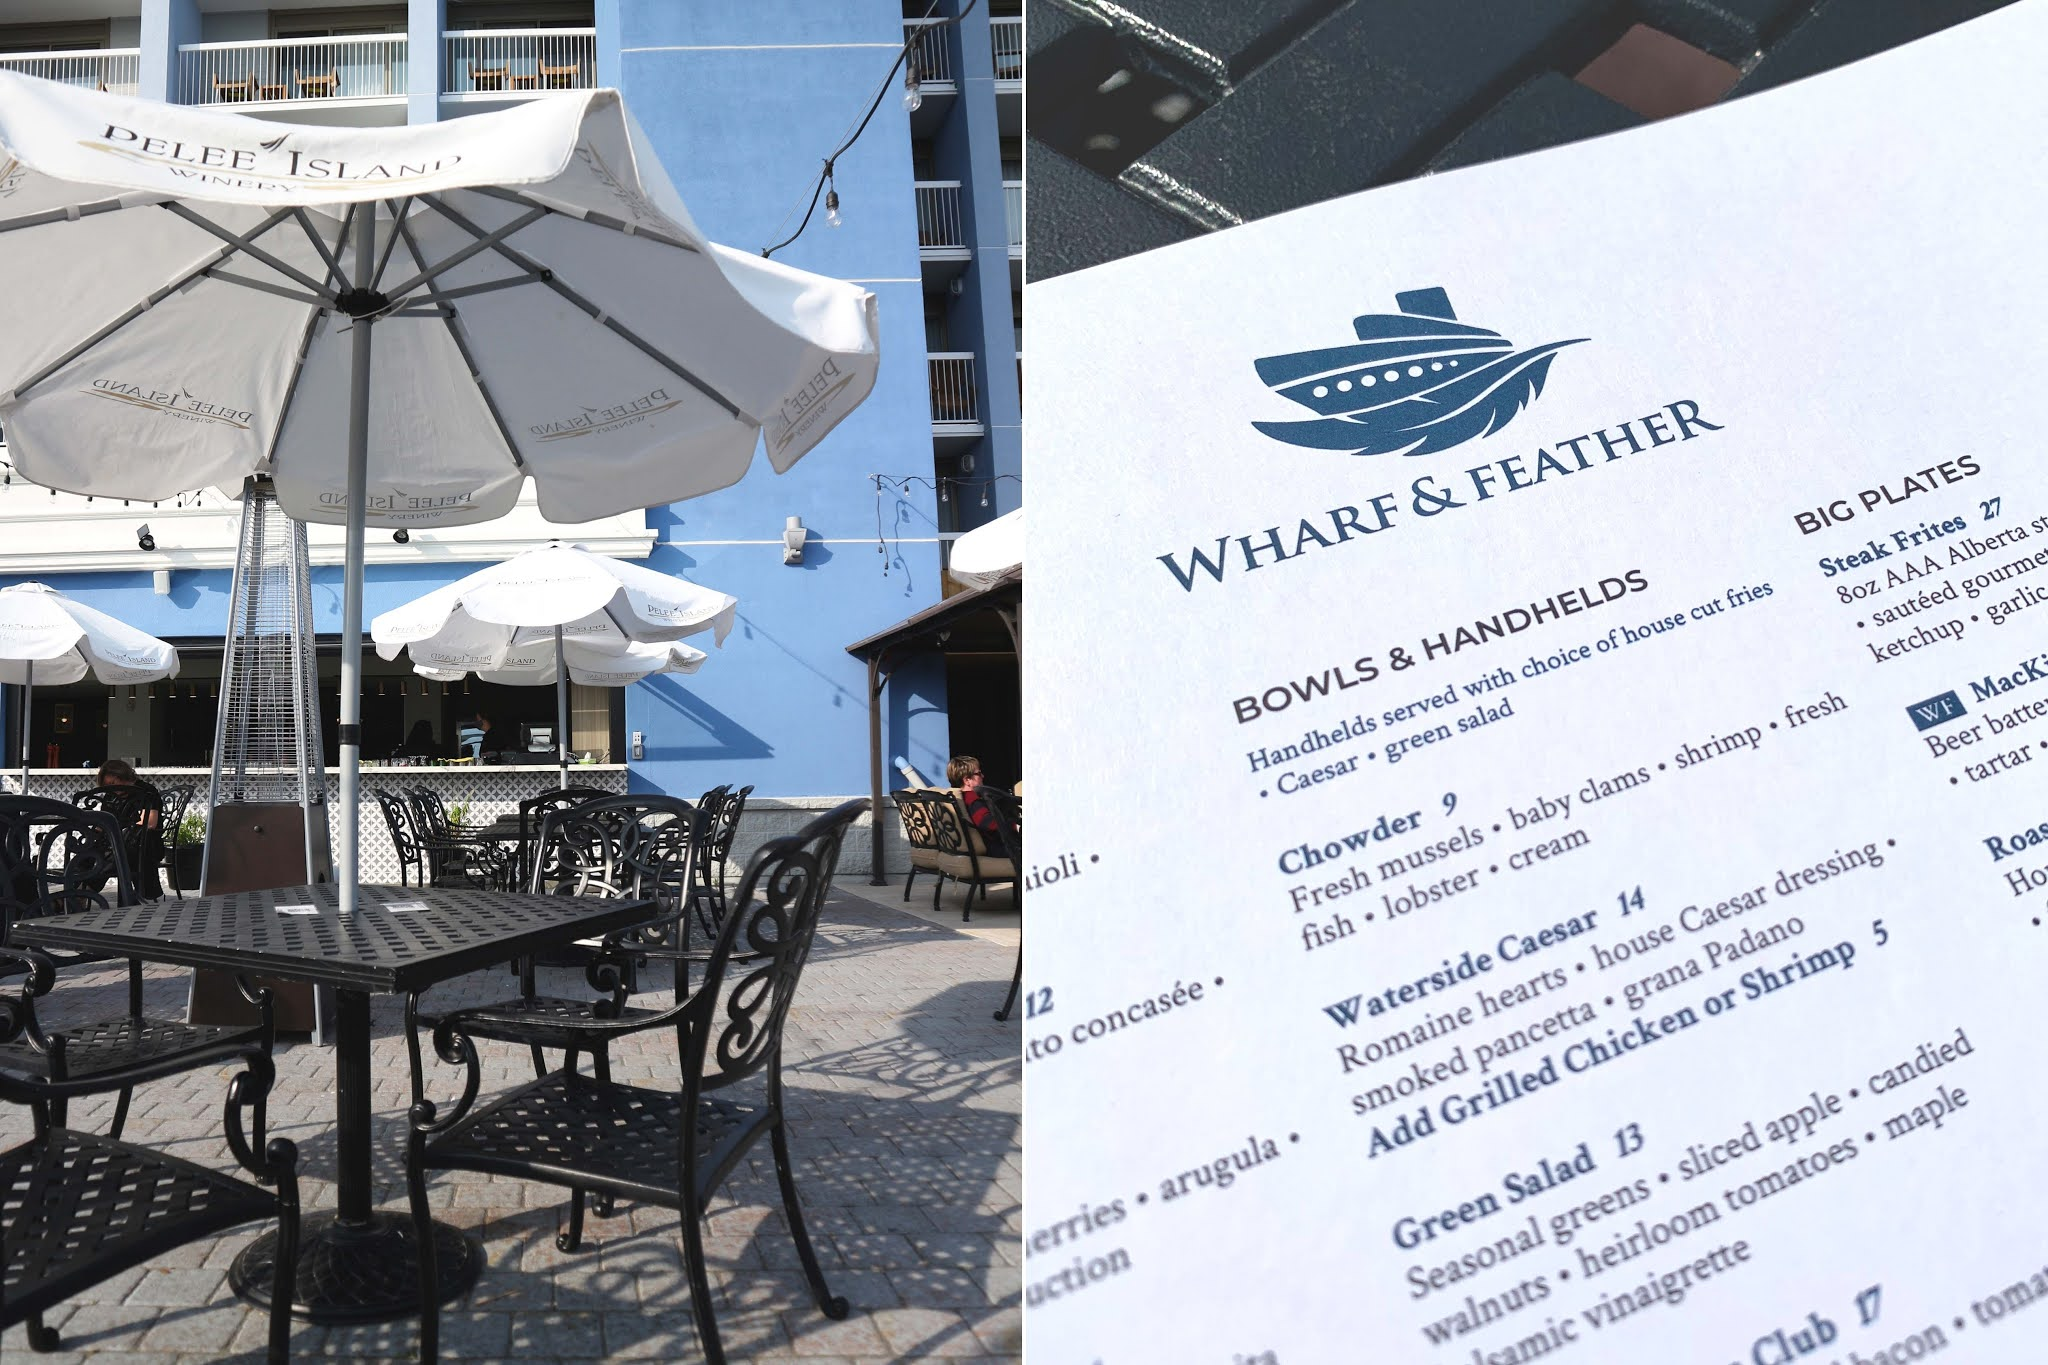 Wharf & Feather Restaurant and Patio in downtown Kingston - Holiday Inn Waterfront